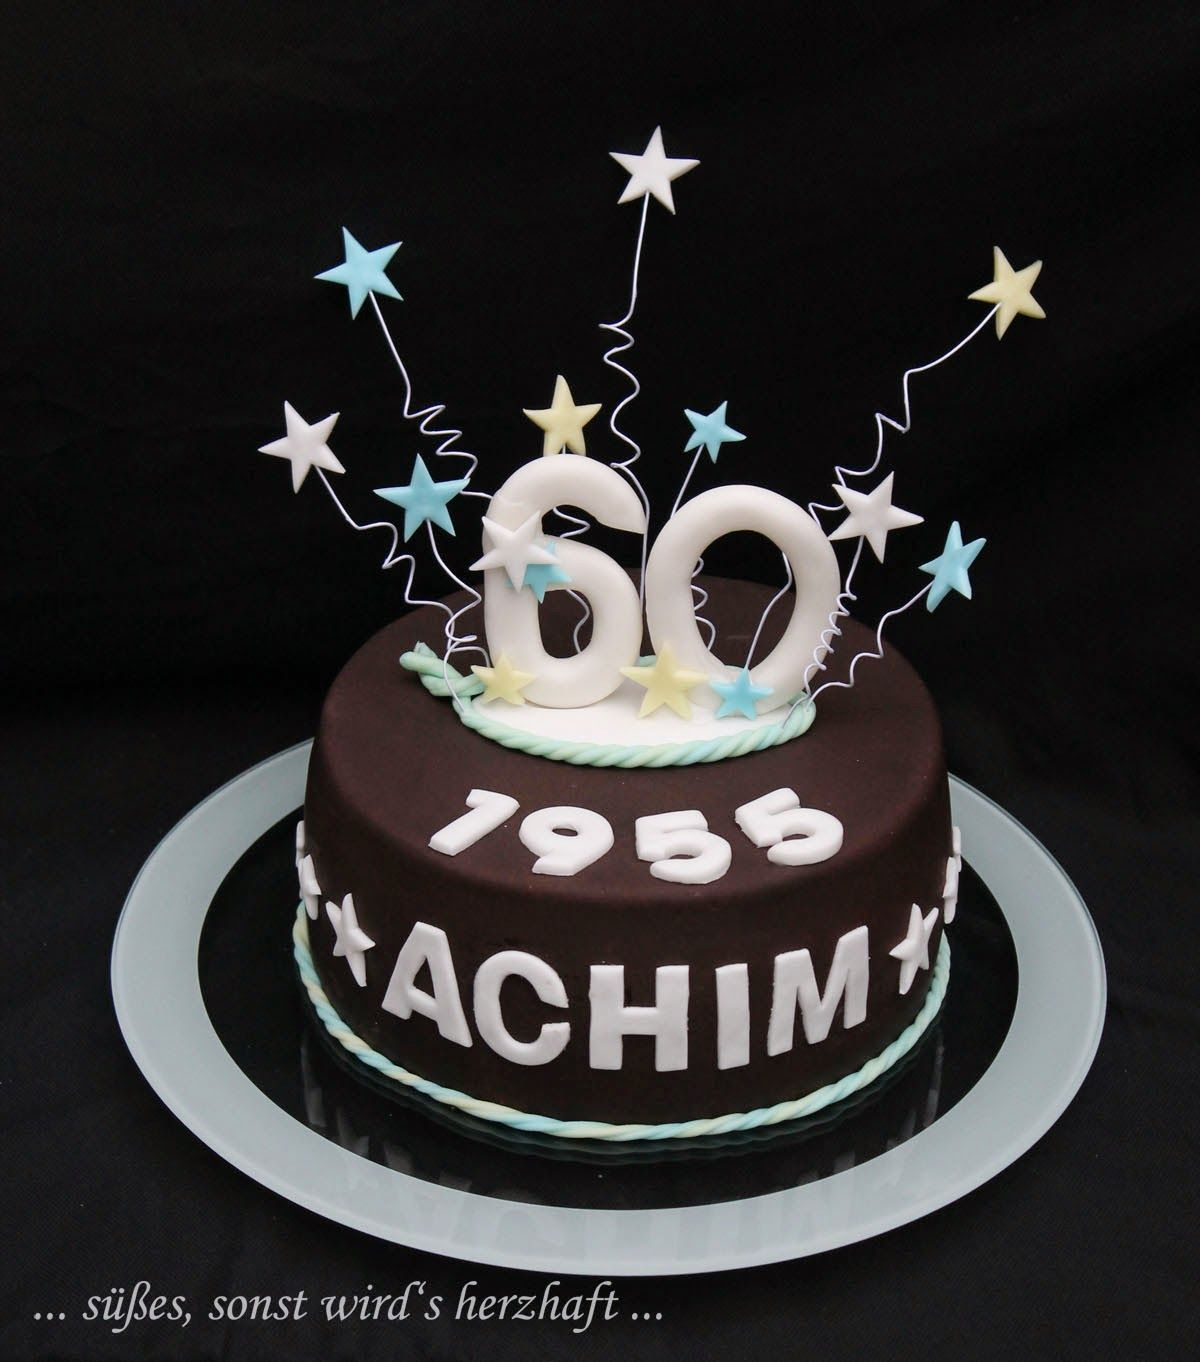 Pin Von Nhóc Xinh Auf Banhs In 2019 60th Birthday Cakes Diy